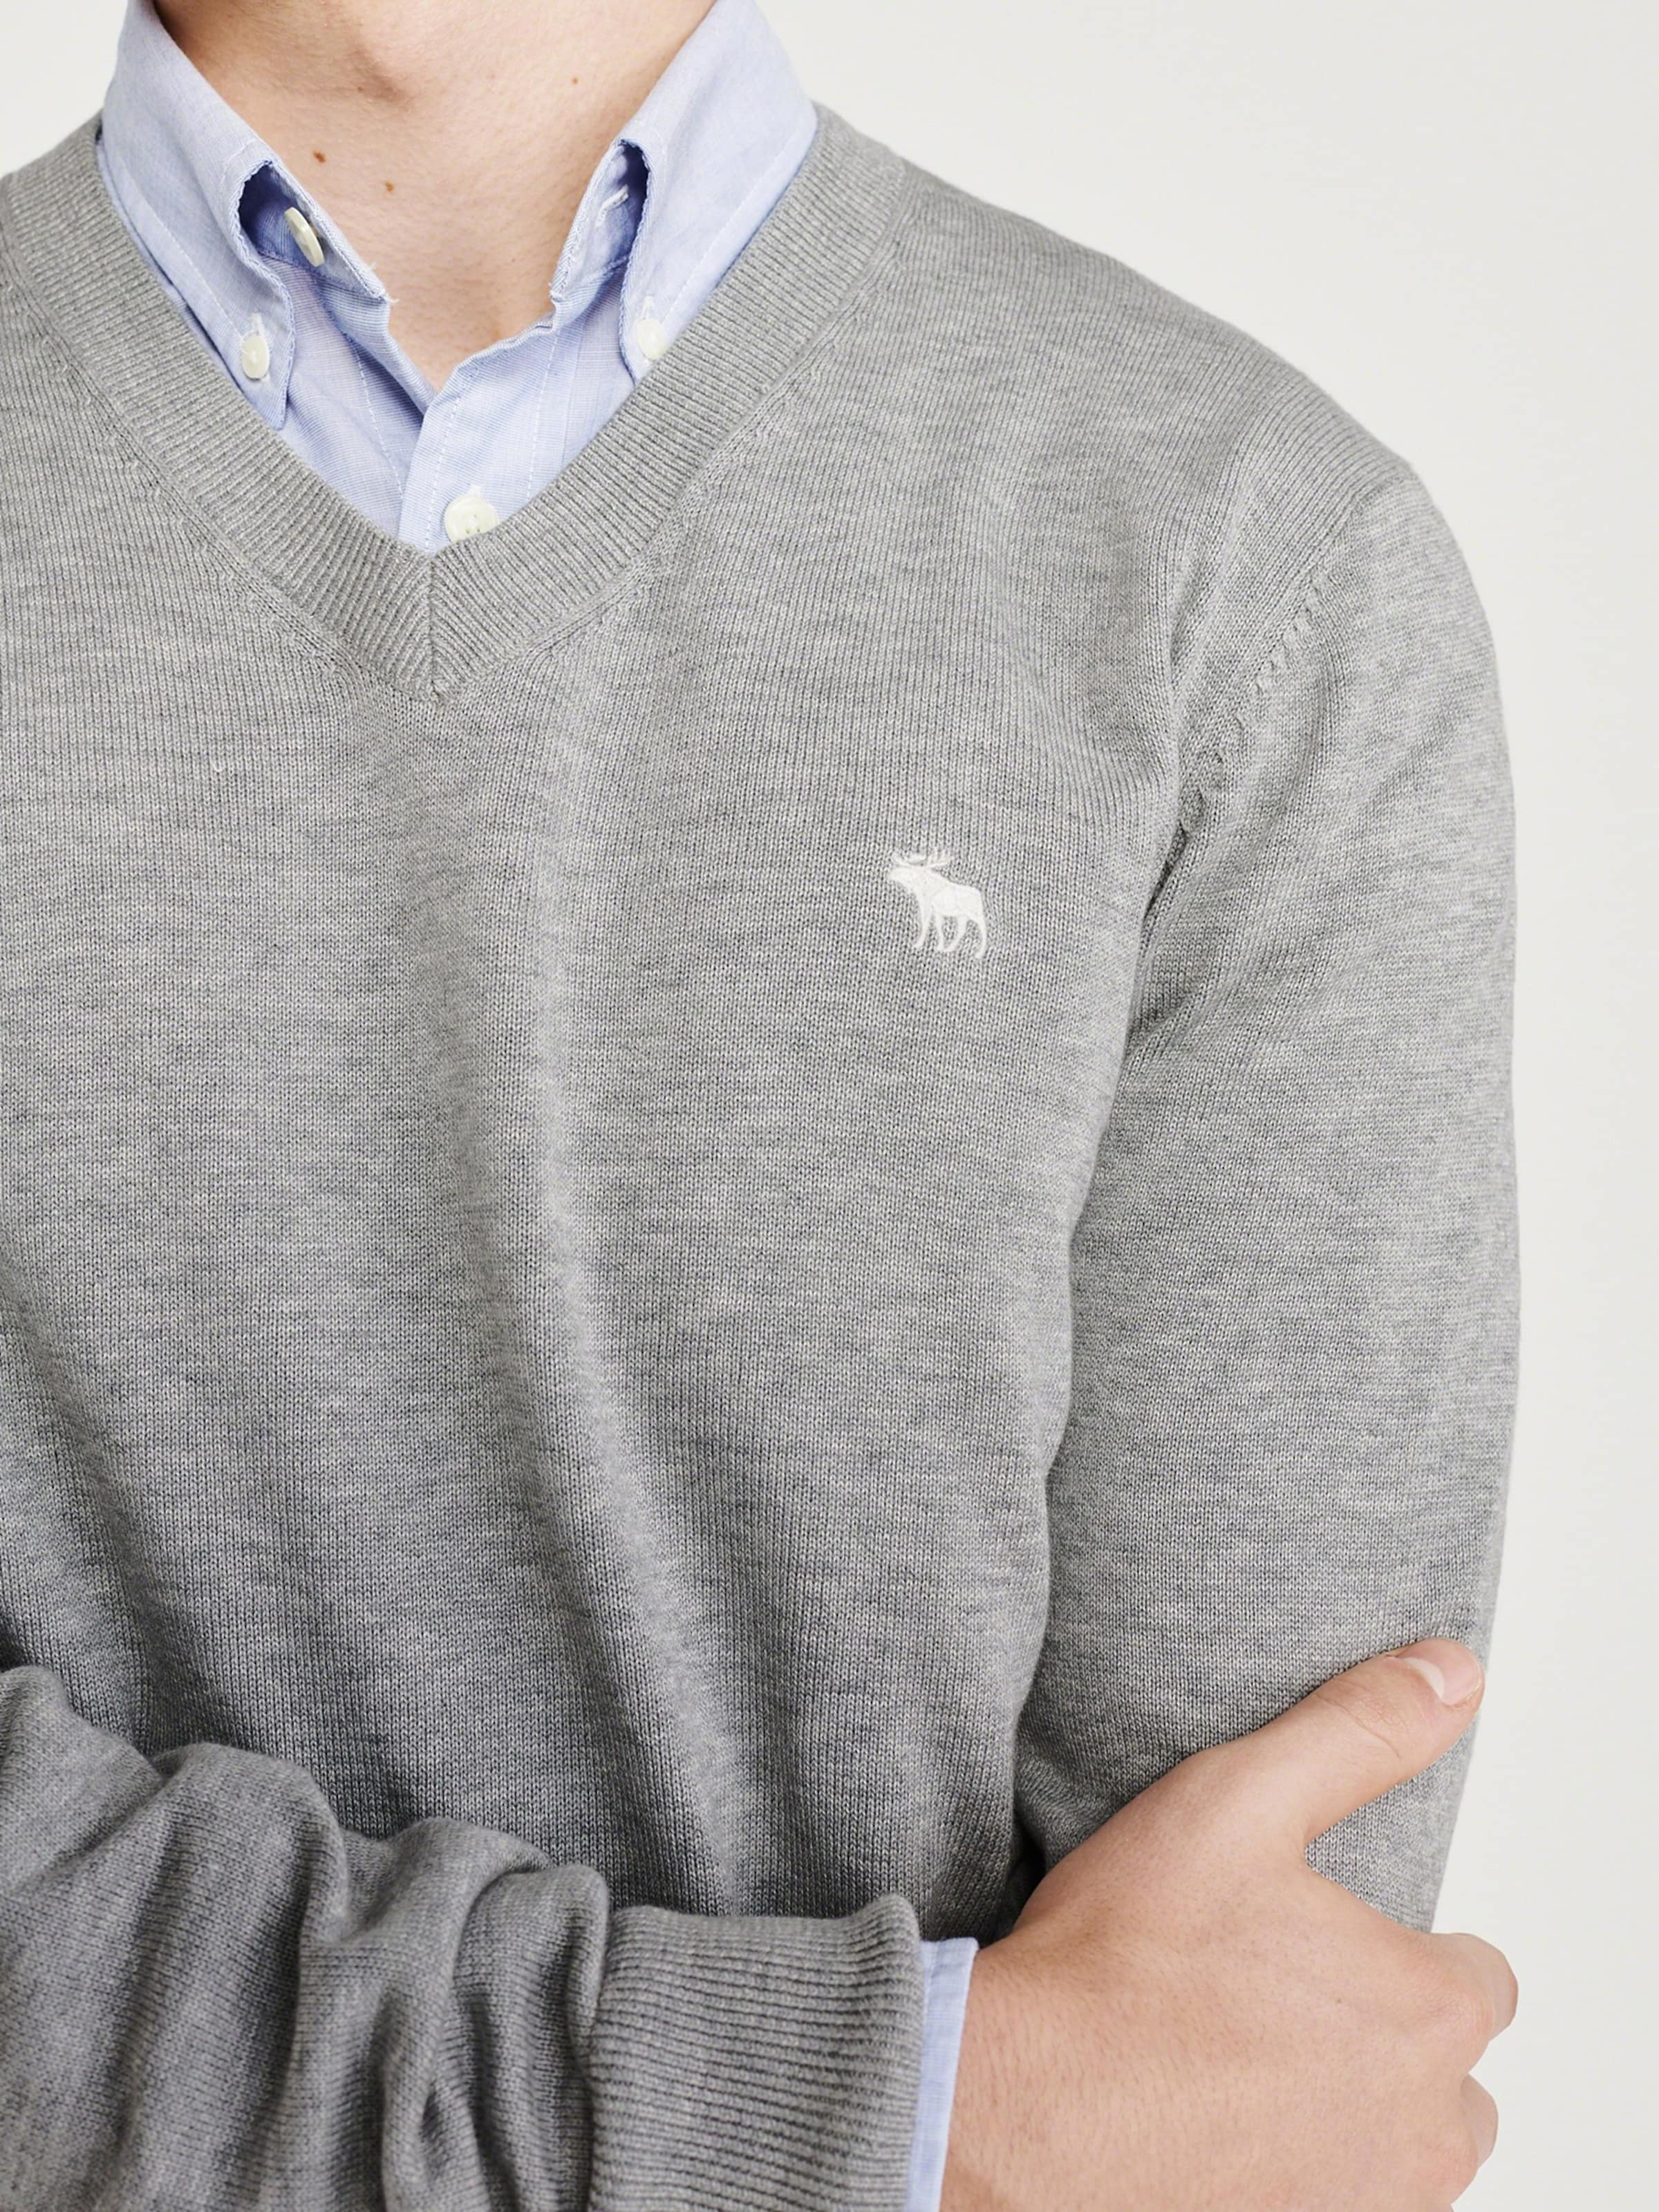 Pull Marine Fitch Bleu Abercrombieamp; over En bfY76gyv